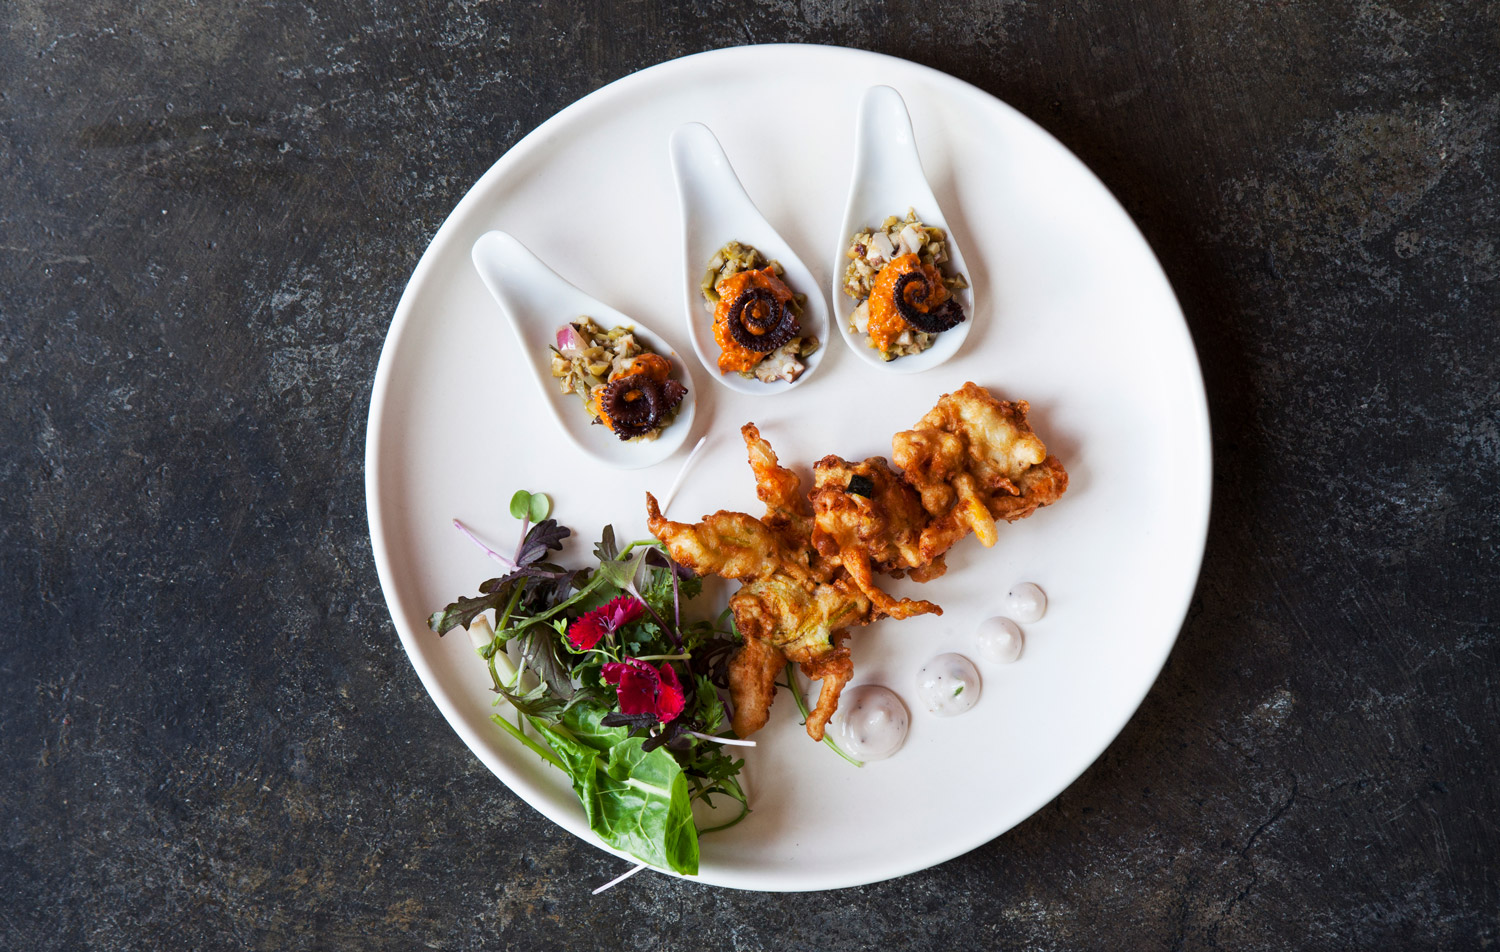 """From the """"delicious bites"""" section of the menu,  squash blossom fritters with grilled octopus and tapenade on the little spoons."""